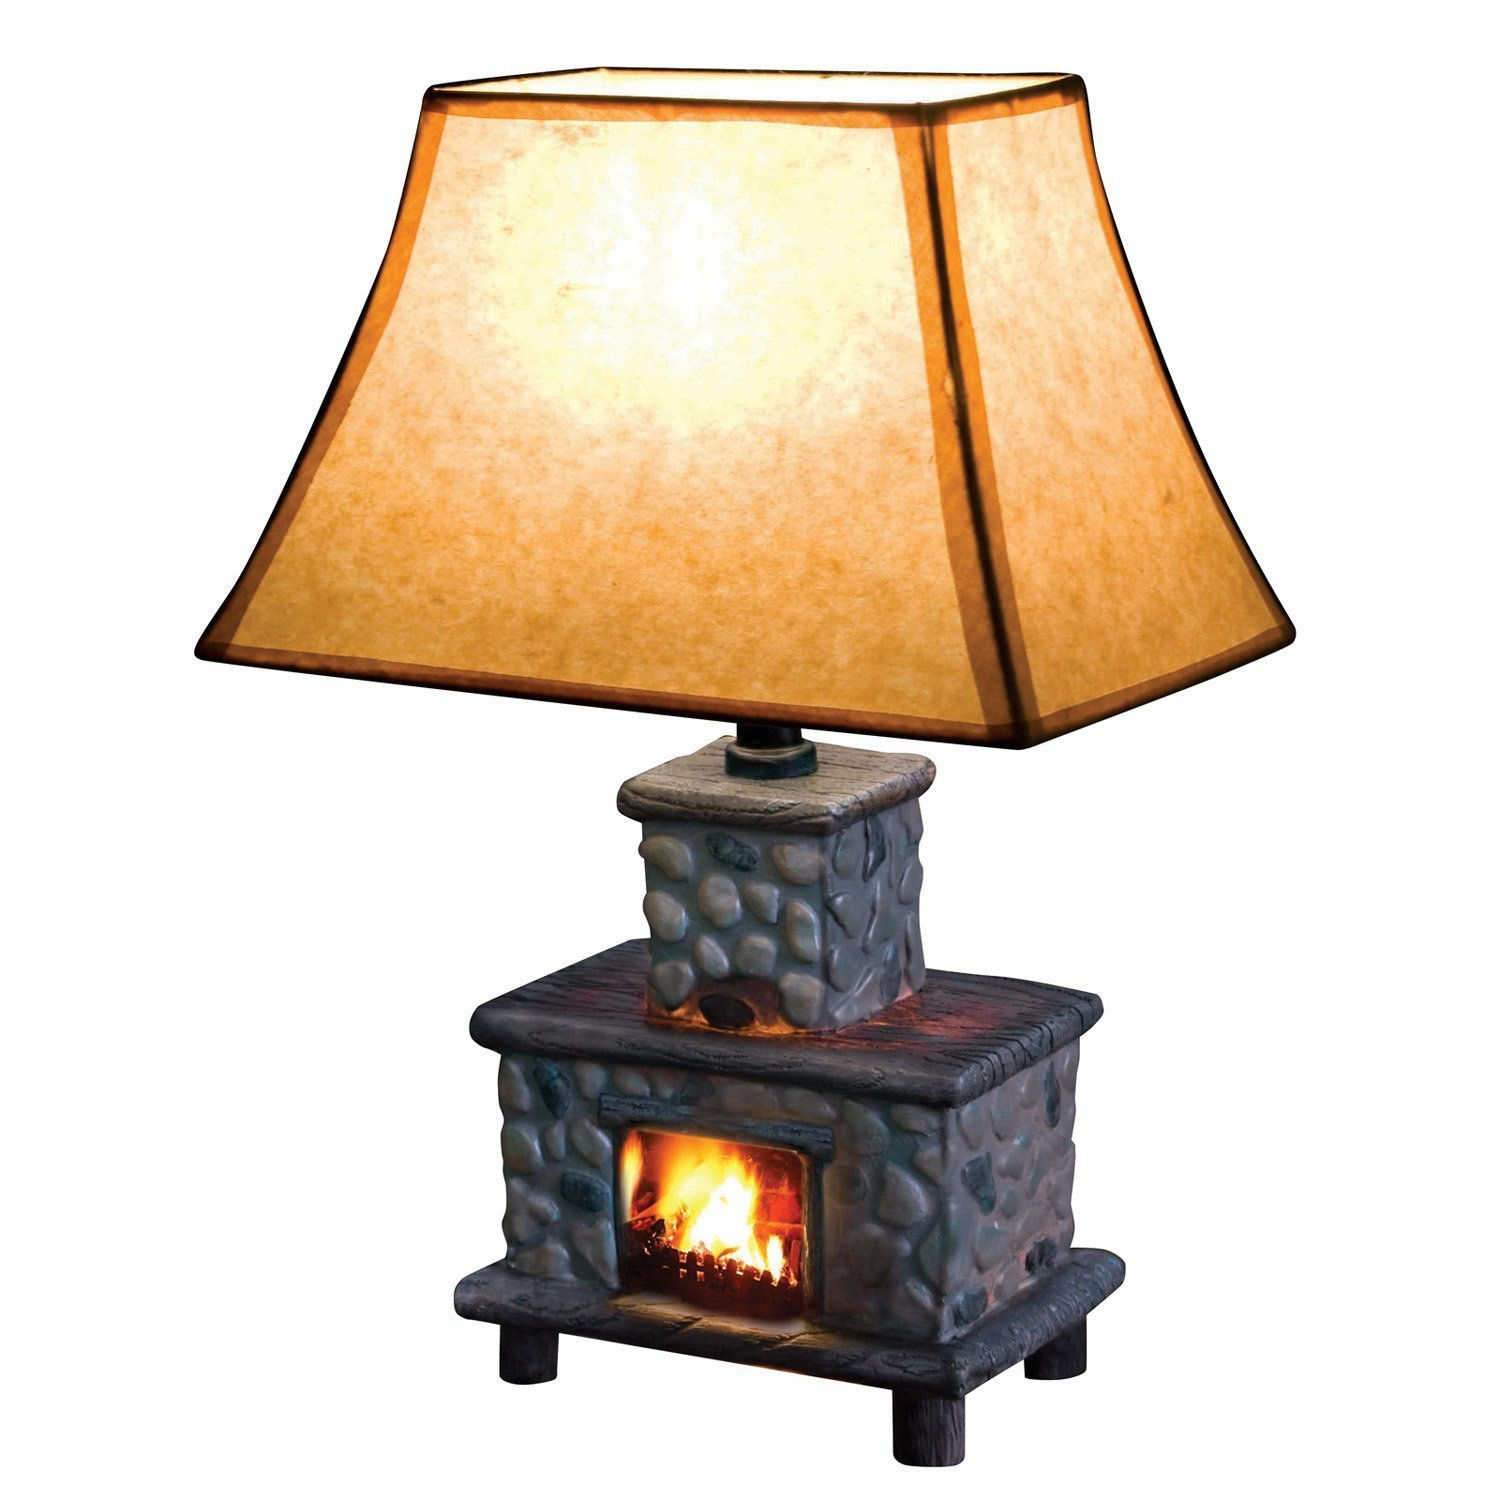 Hand painted ceramic fireplace table lamp rustic lamps amazon aloadofball Images